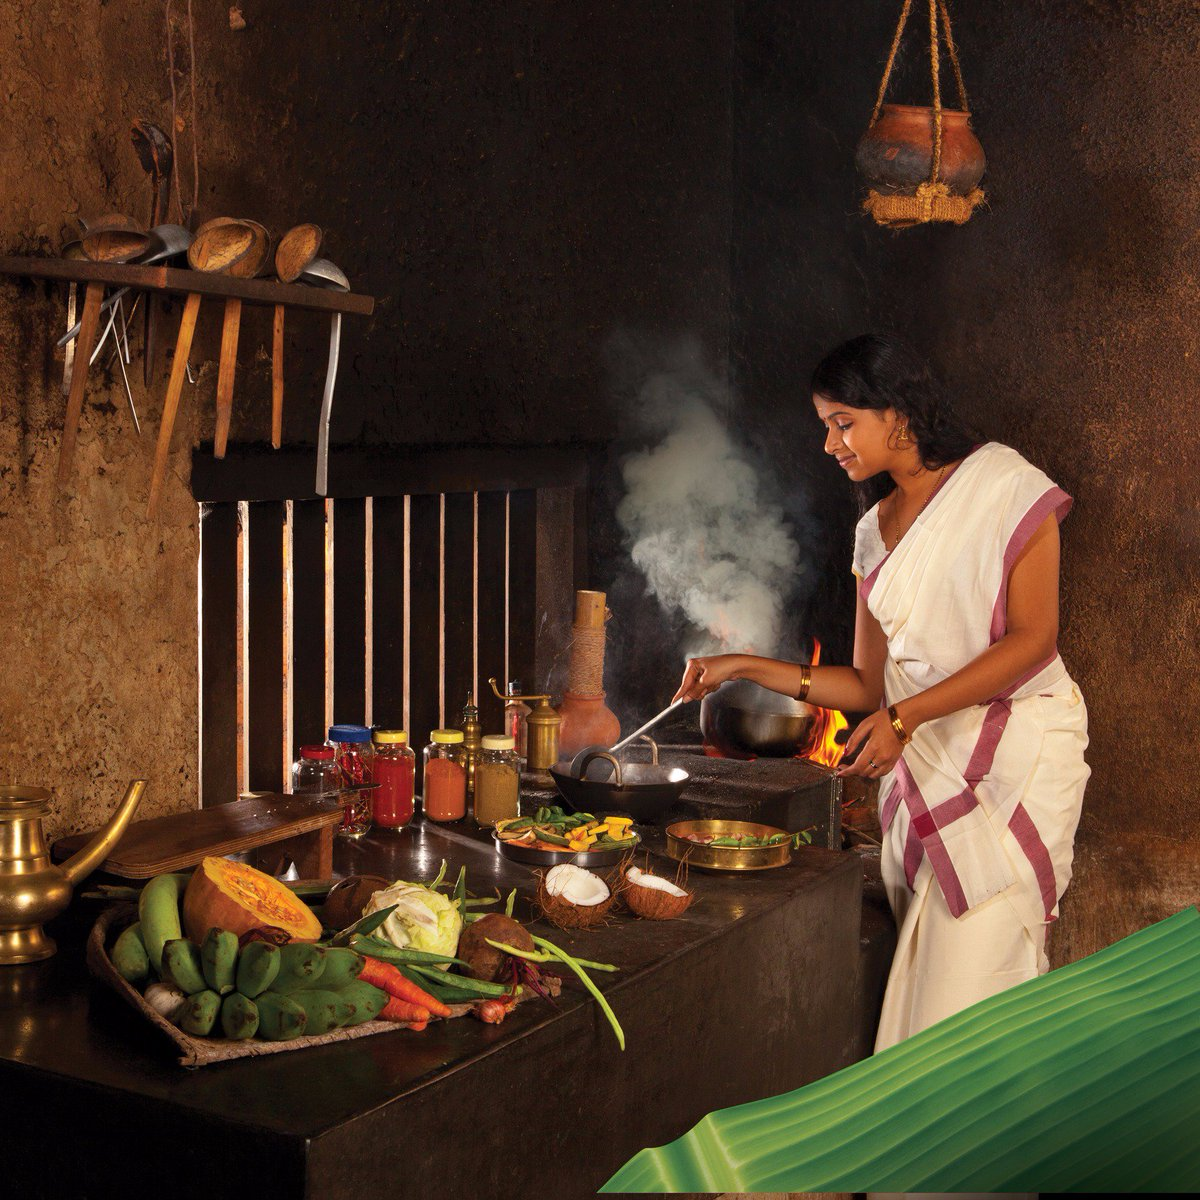 Kerala Tourism On Twitter Coconut Shell Ladles Earthen Pots Banana Leaves That Replace Plates Don T You Just Love This Traditional Kerala Kitchen Https T Co Zg5el05qi7